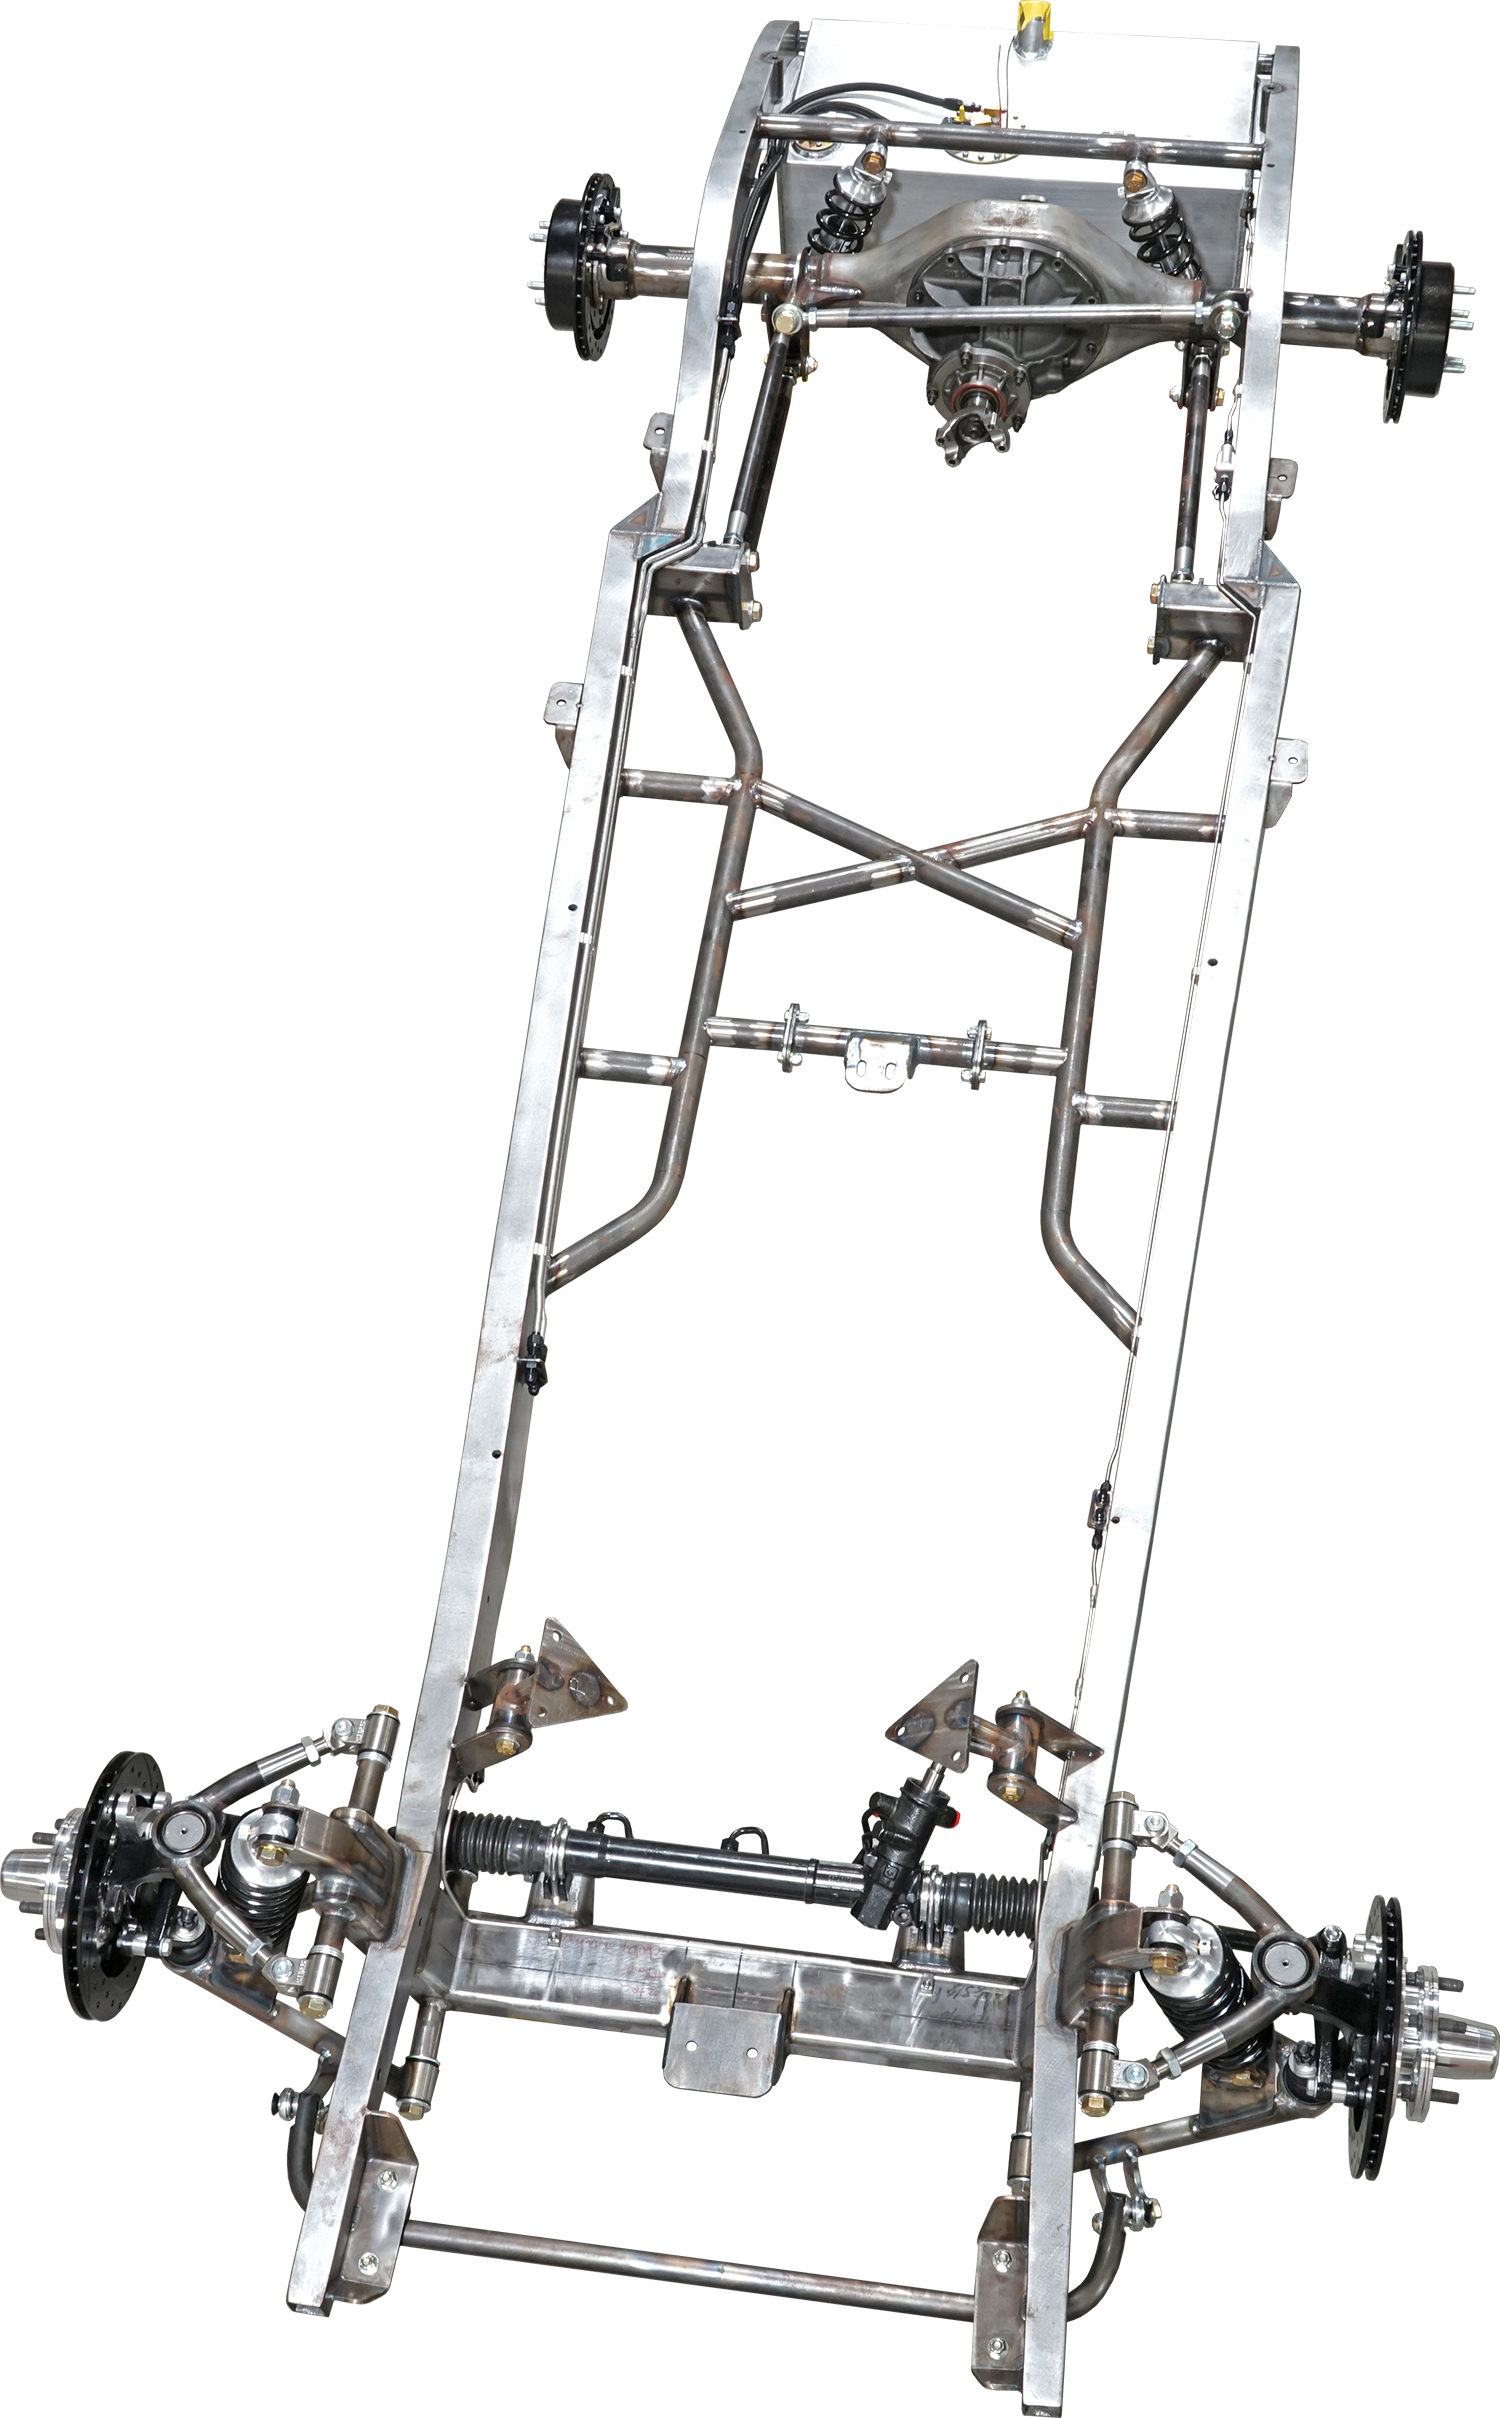 scotts-35-chevy-coilover-chassis-web